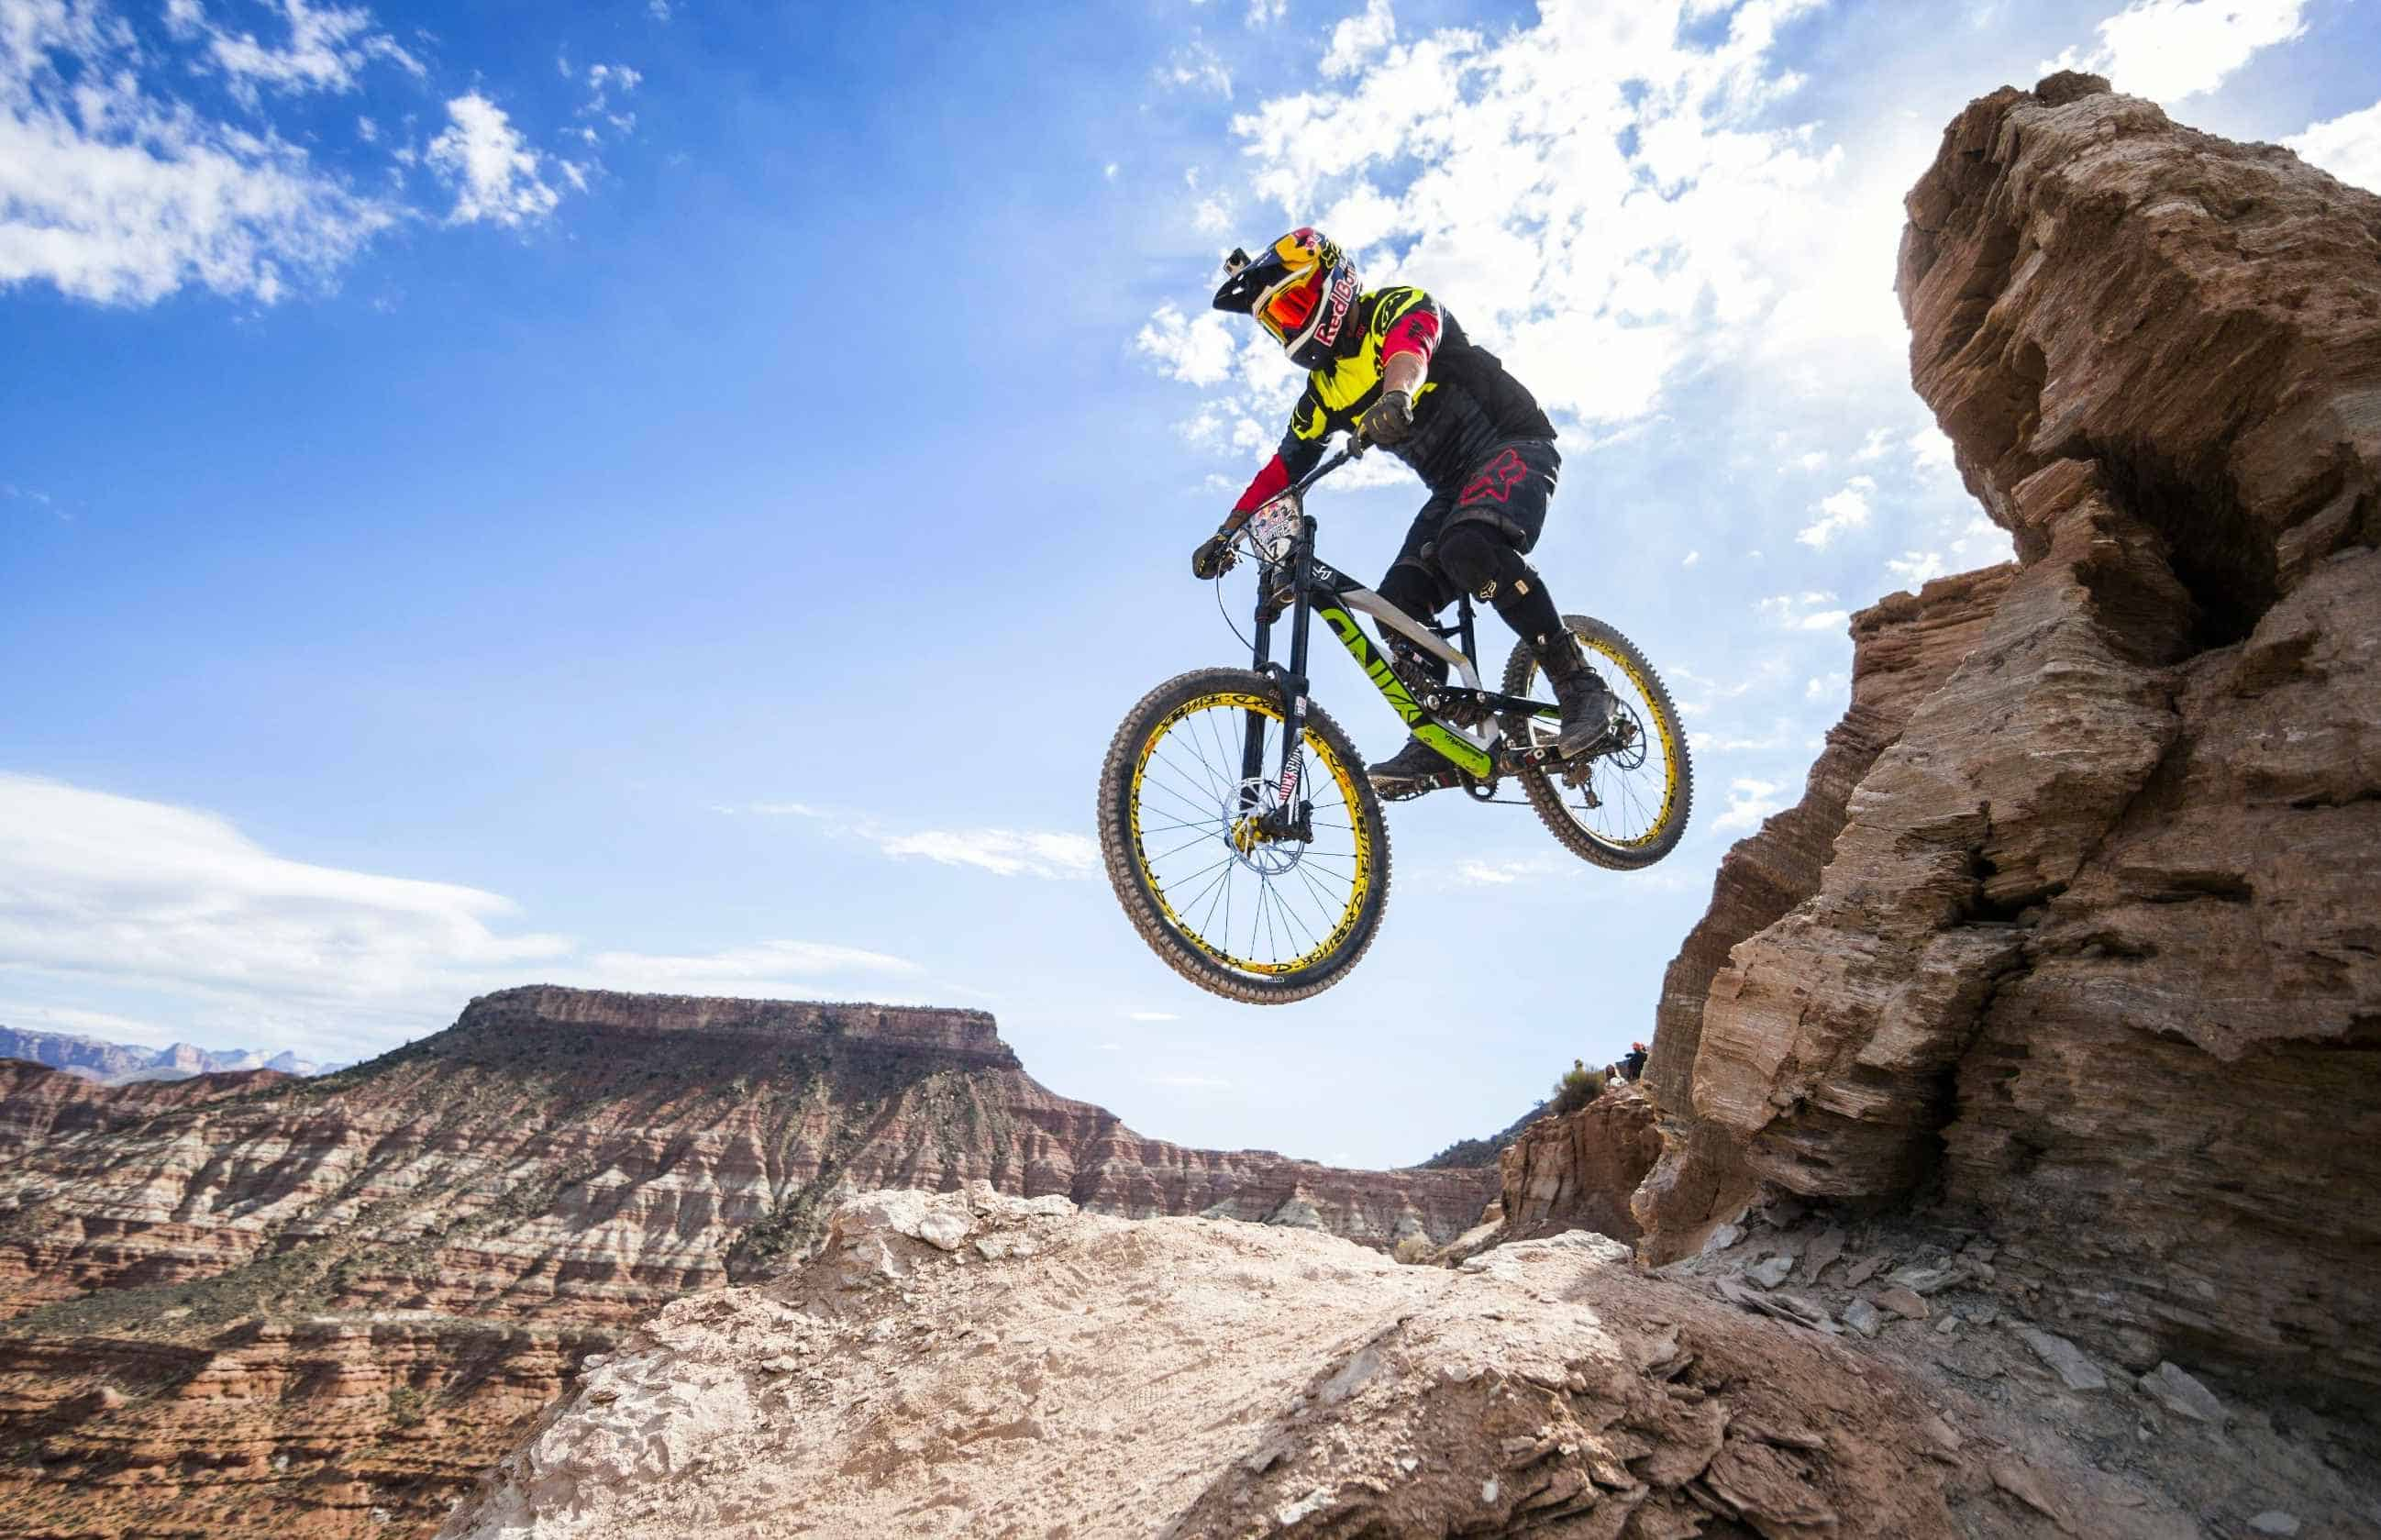 Red Bull Mountain Bike >> Red Bull Rampage Gopro Mountain Bike Video Wild Child Sports